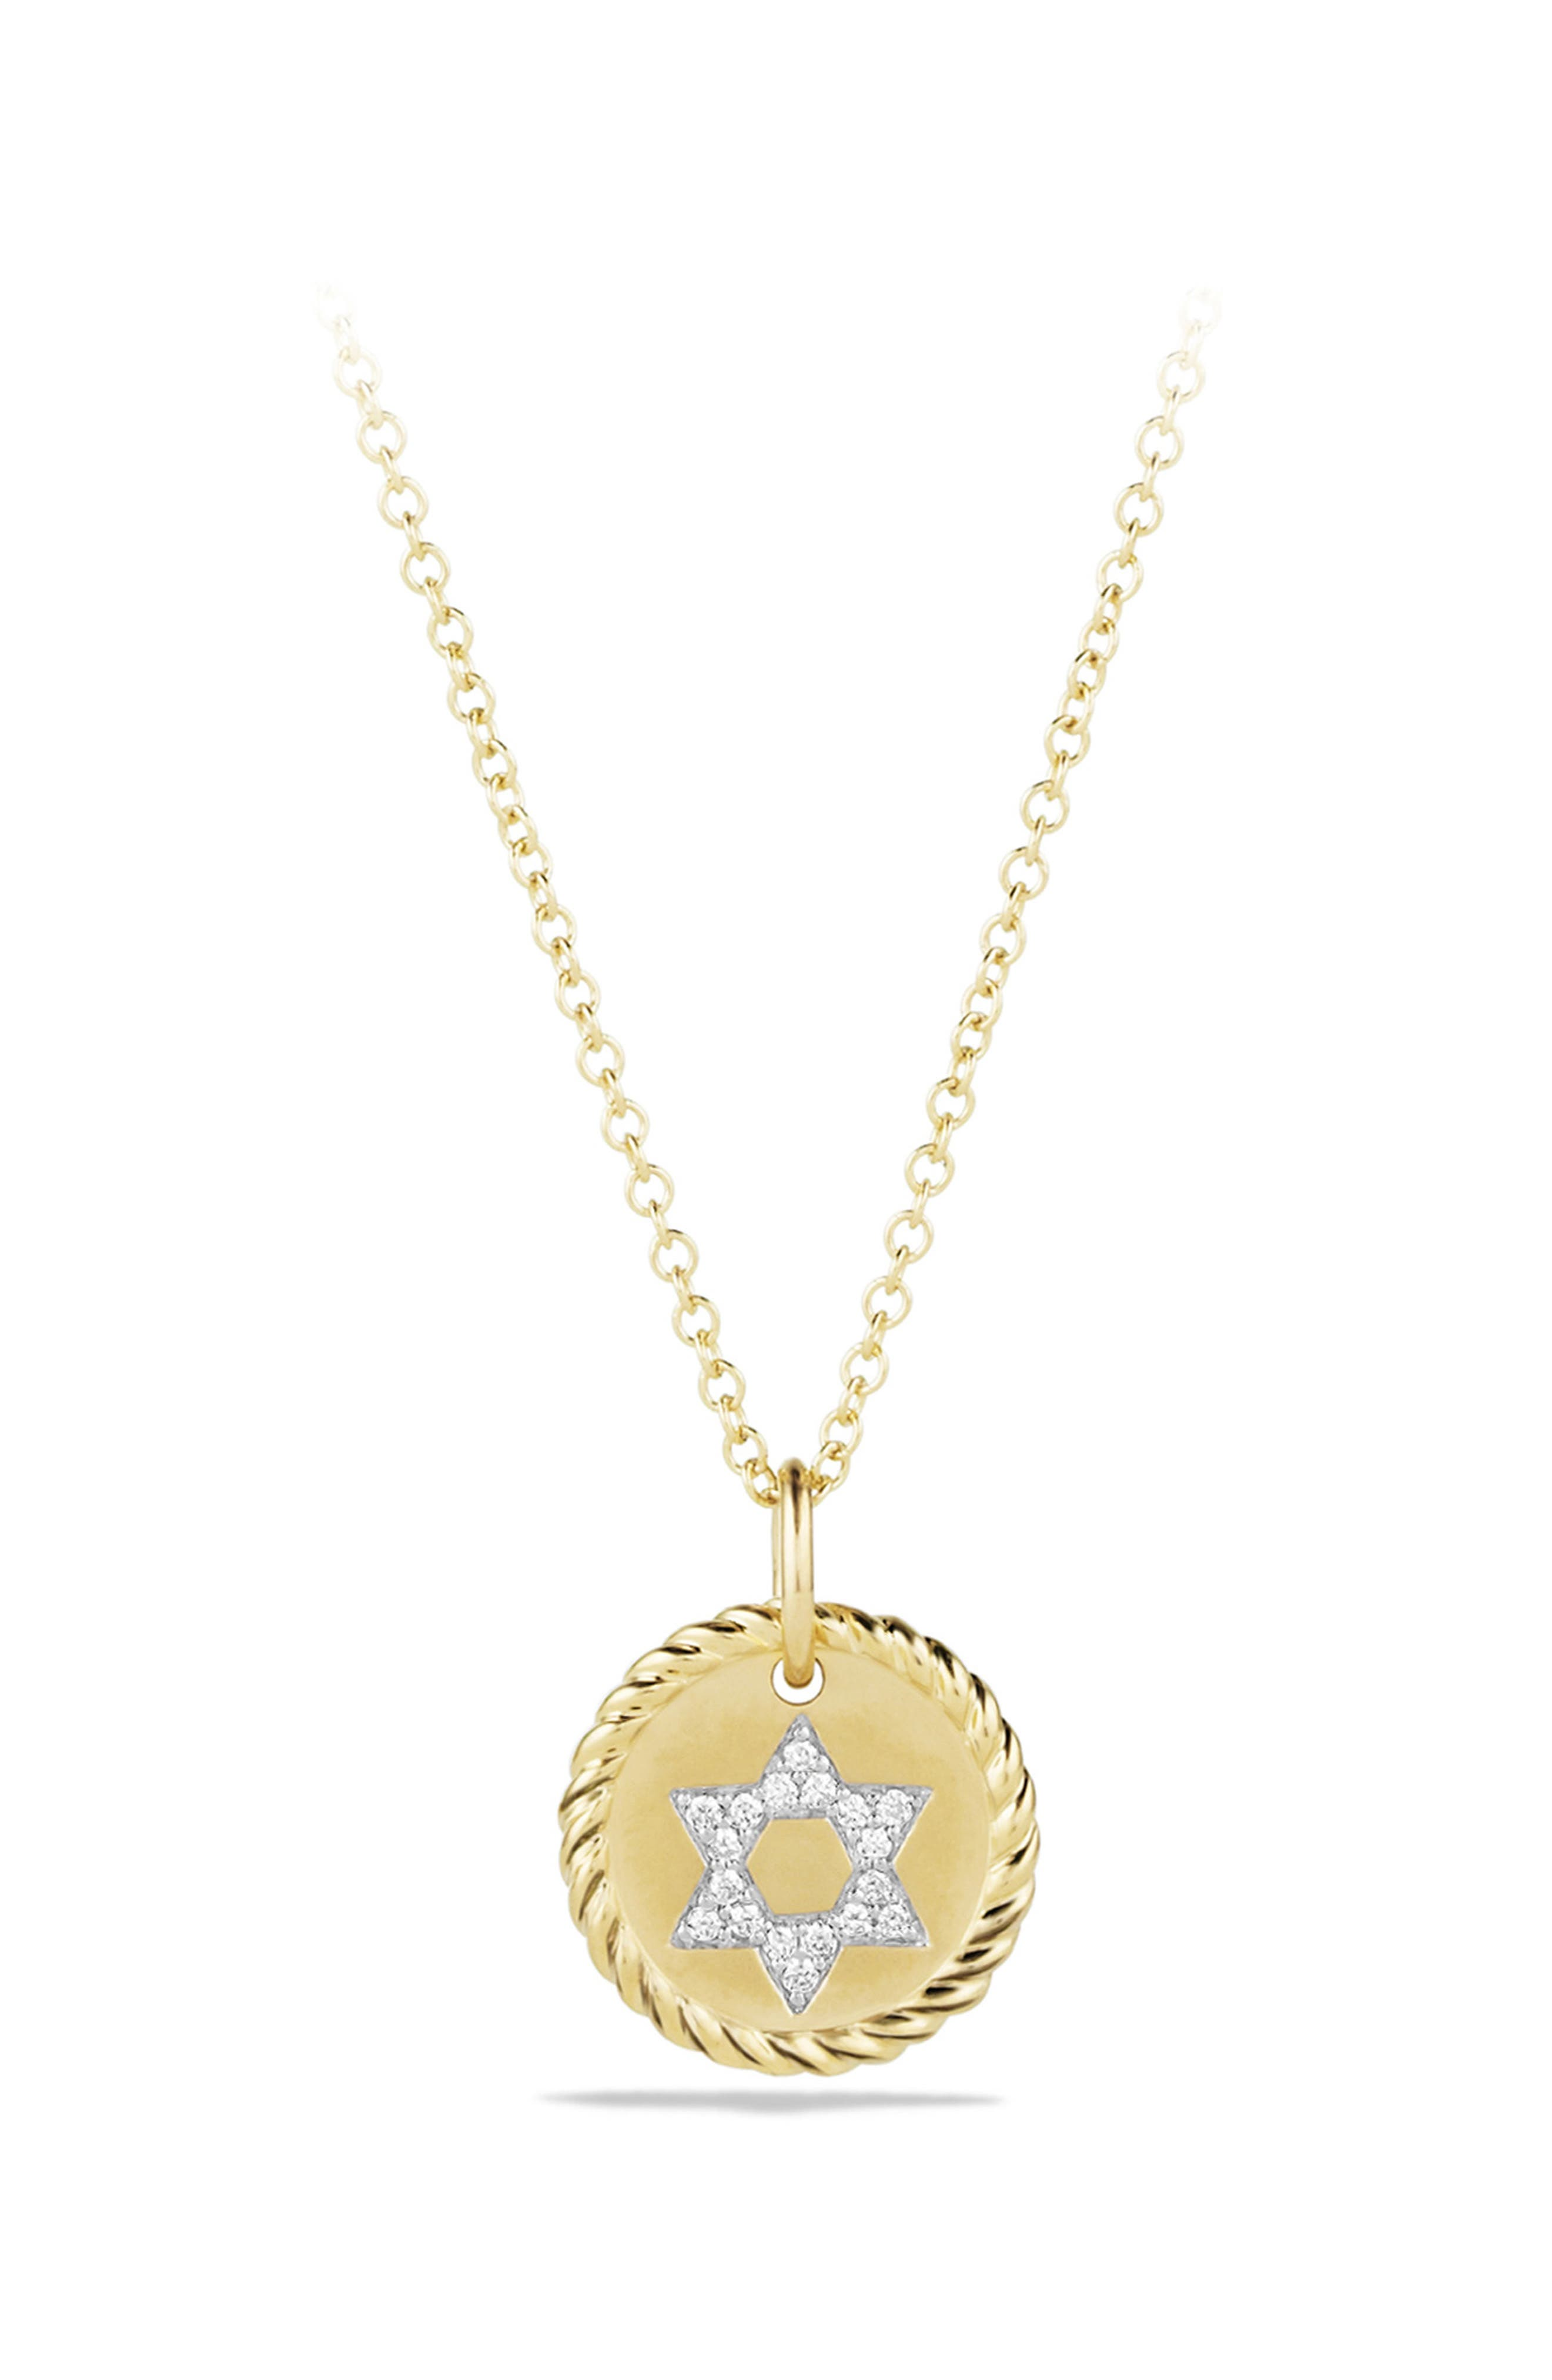 'Cable Collectibles' Star of David Charm Necklace with Diamonds in Gold,                             Main thumbnail 1, color,                             DIAMOND